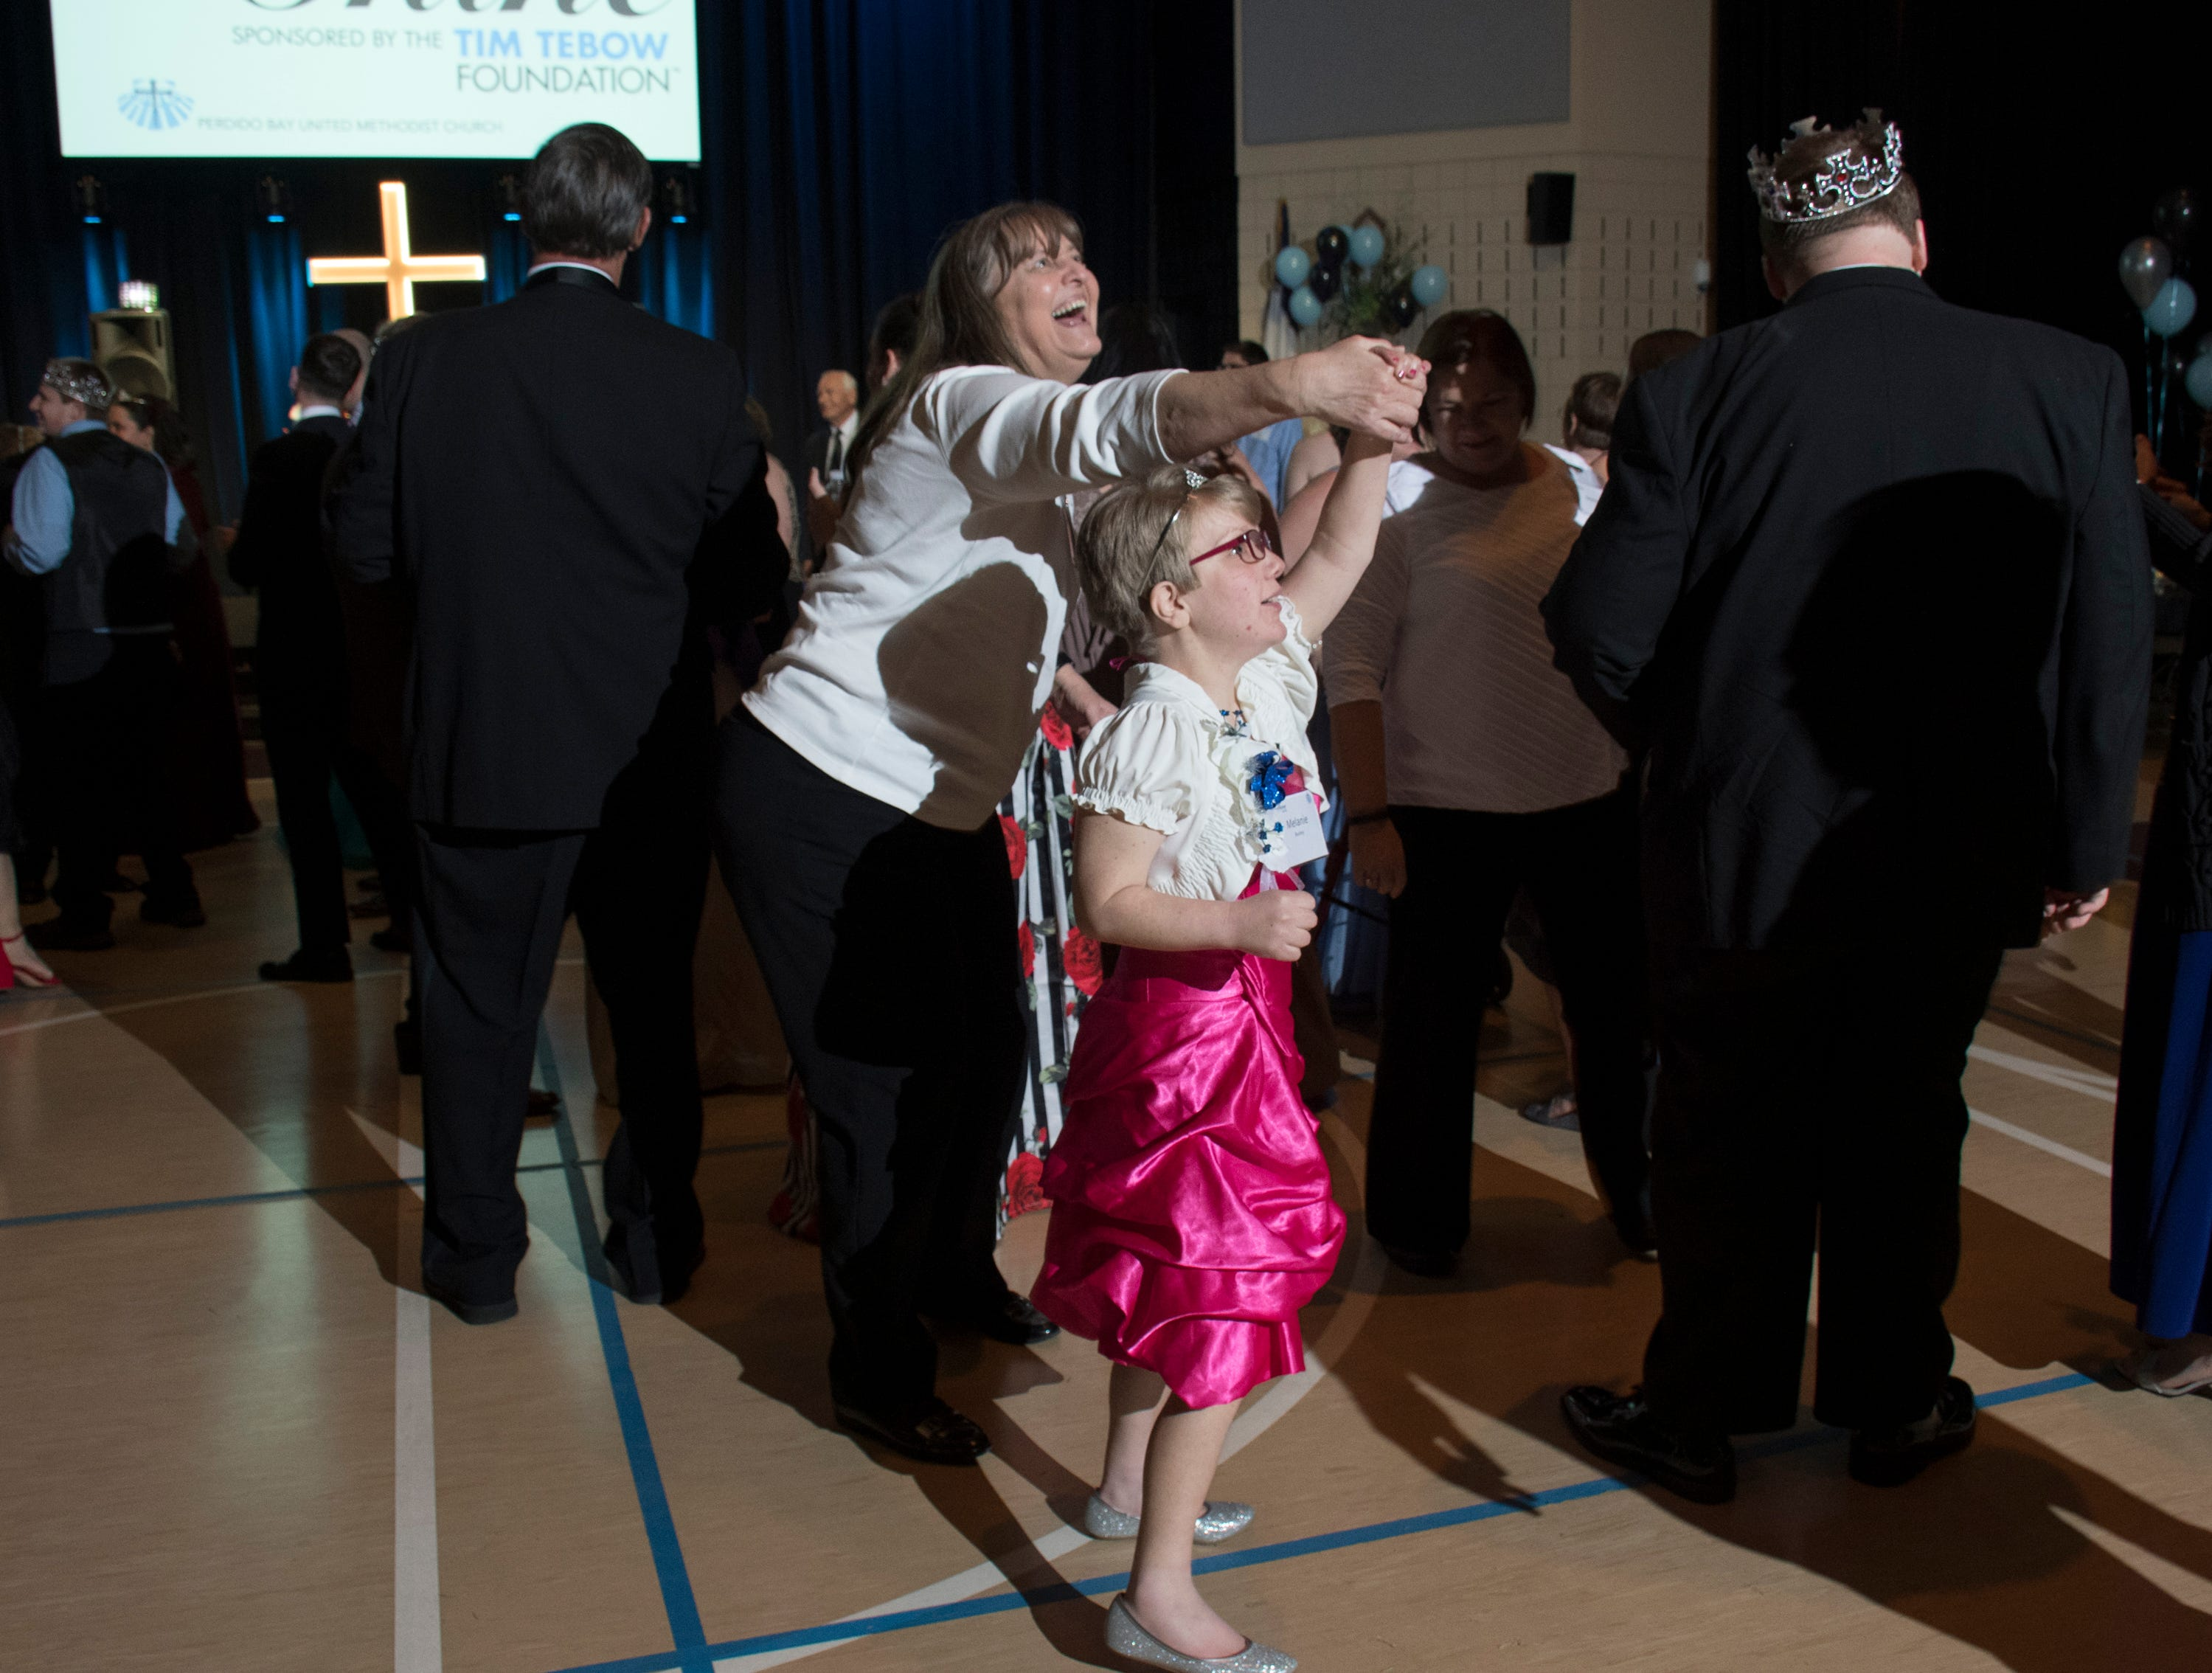 Melanie Bushey dances with her buddy Diane during the Night to Shine prom for people with special needs sponsored by the Tim Tebow Foundation at Perdido Bay United Methodist Church in Pensacola on Friday, February 8, 2019.